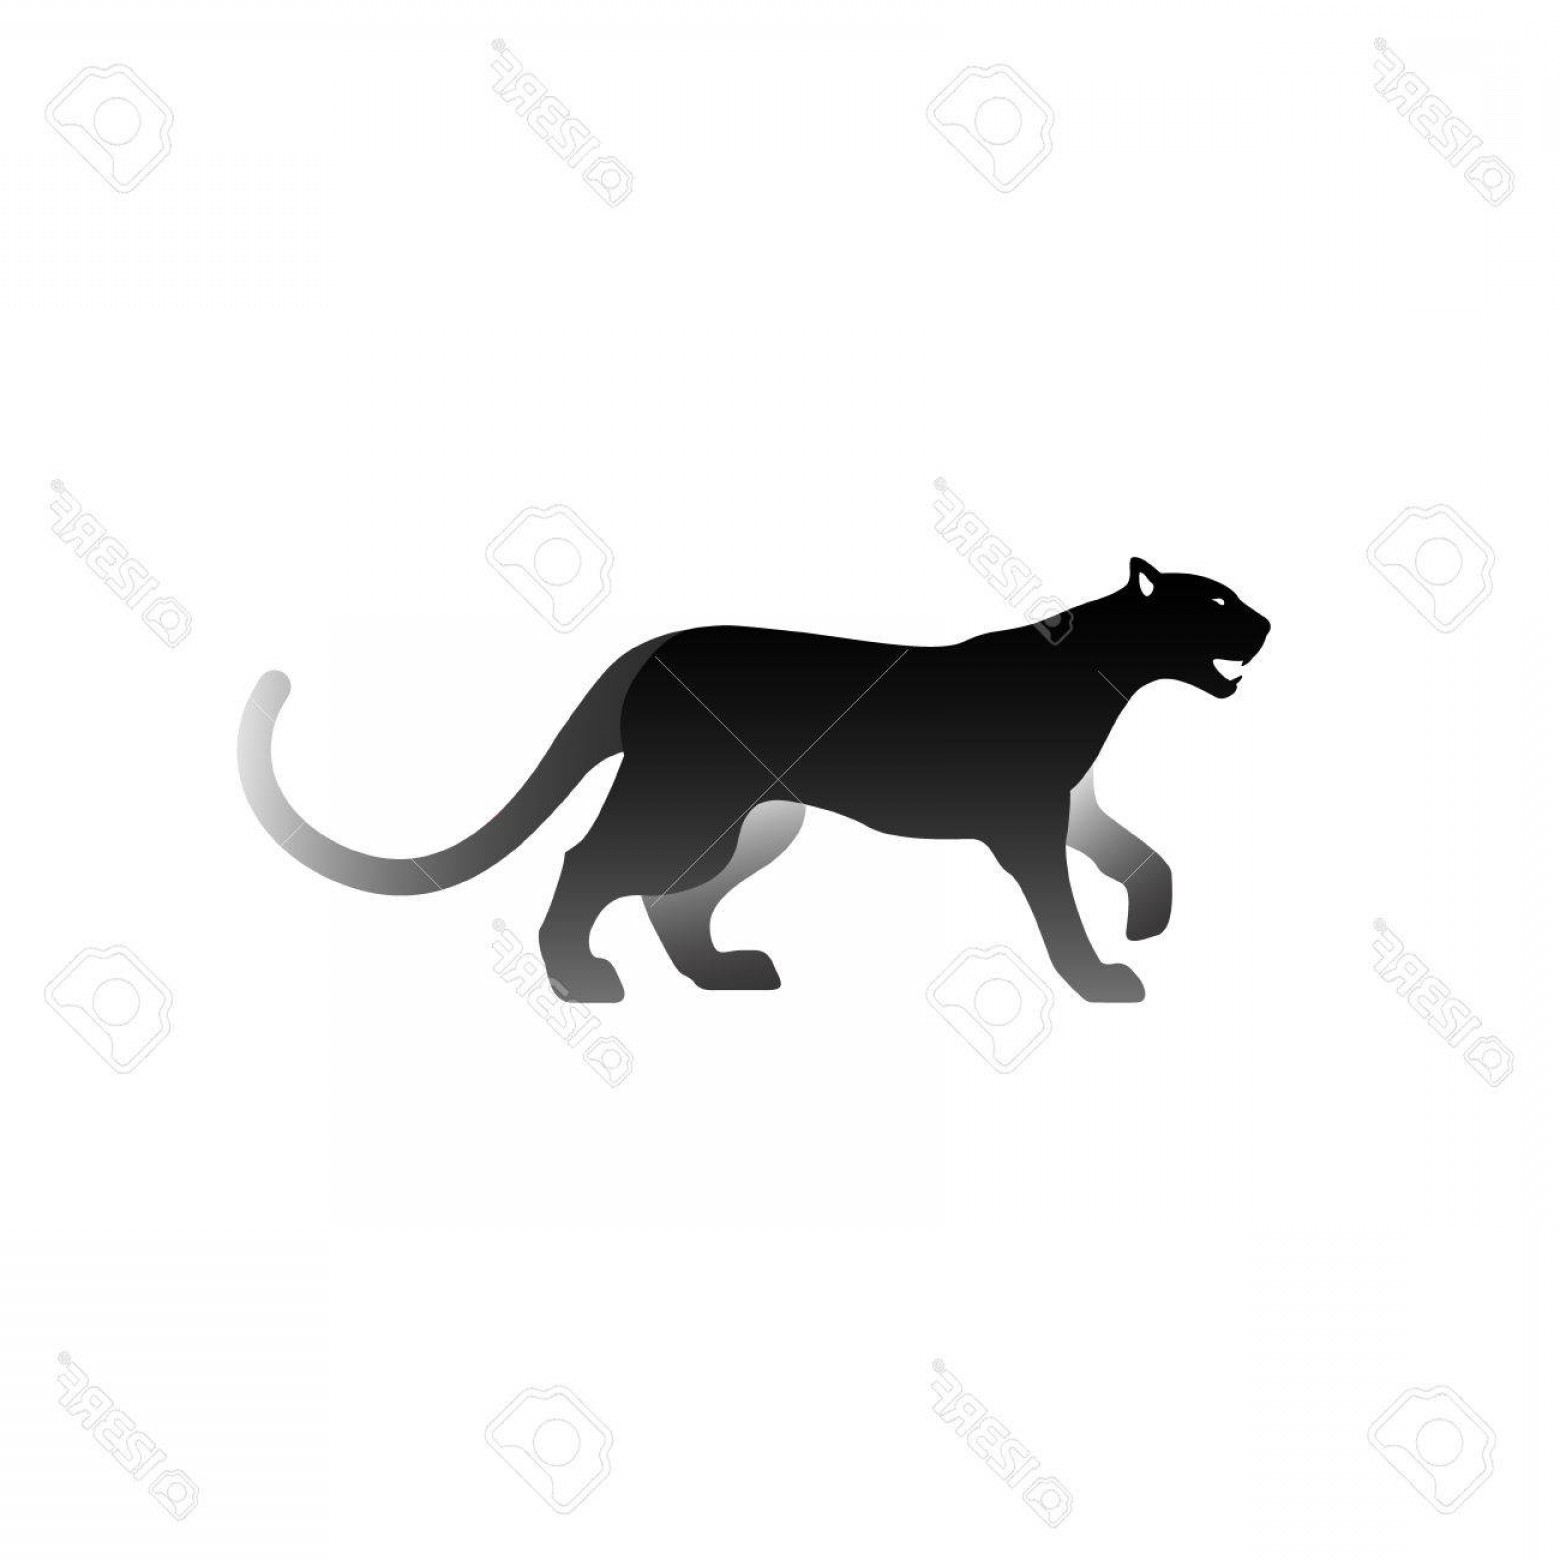 Panther Silhouette Vector: Photostock Vector Vector Illustration Of Black Panther Isolated On White Background Icon Logo Panther Side View